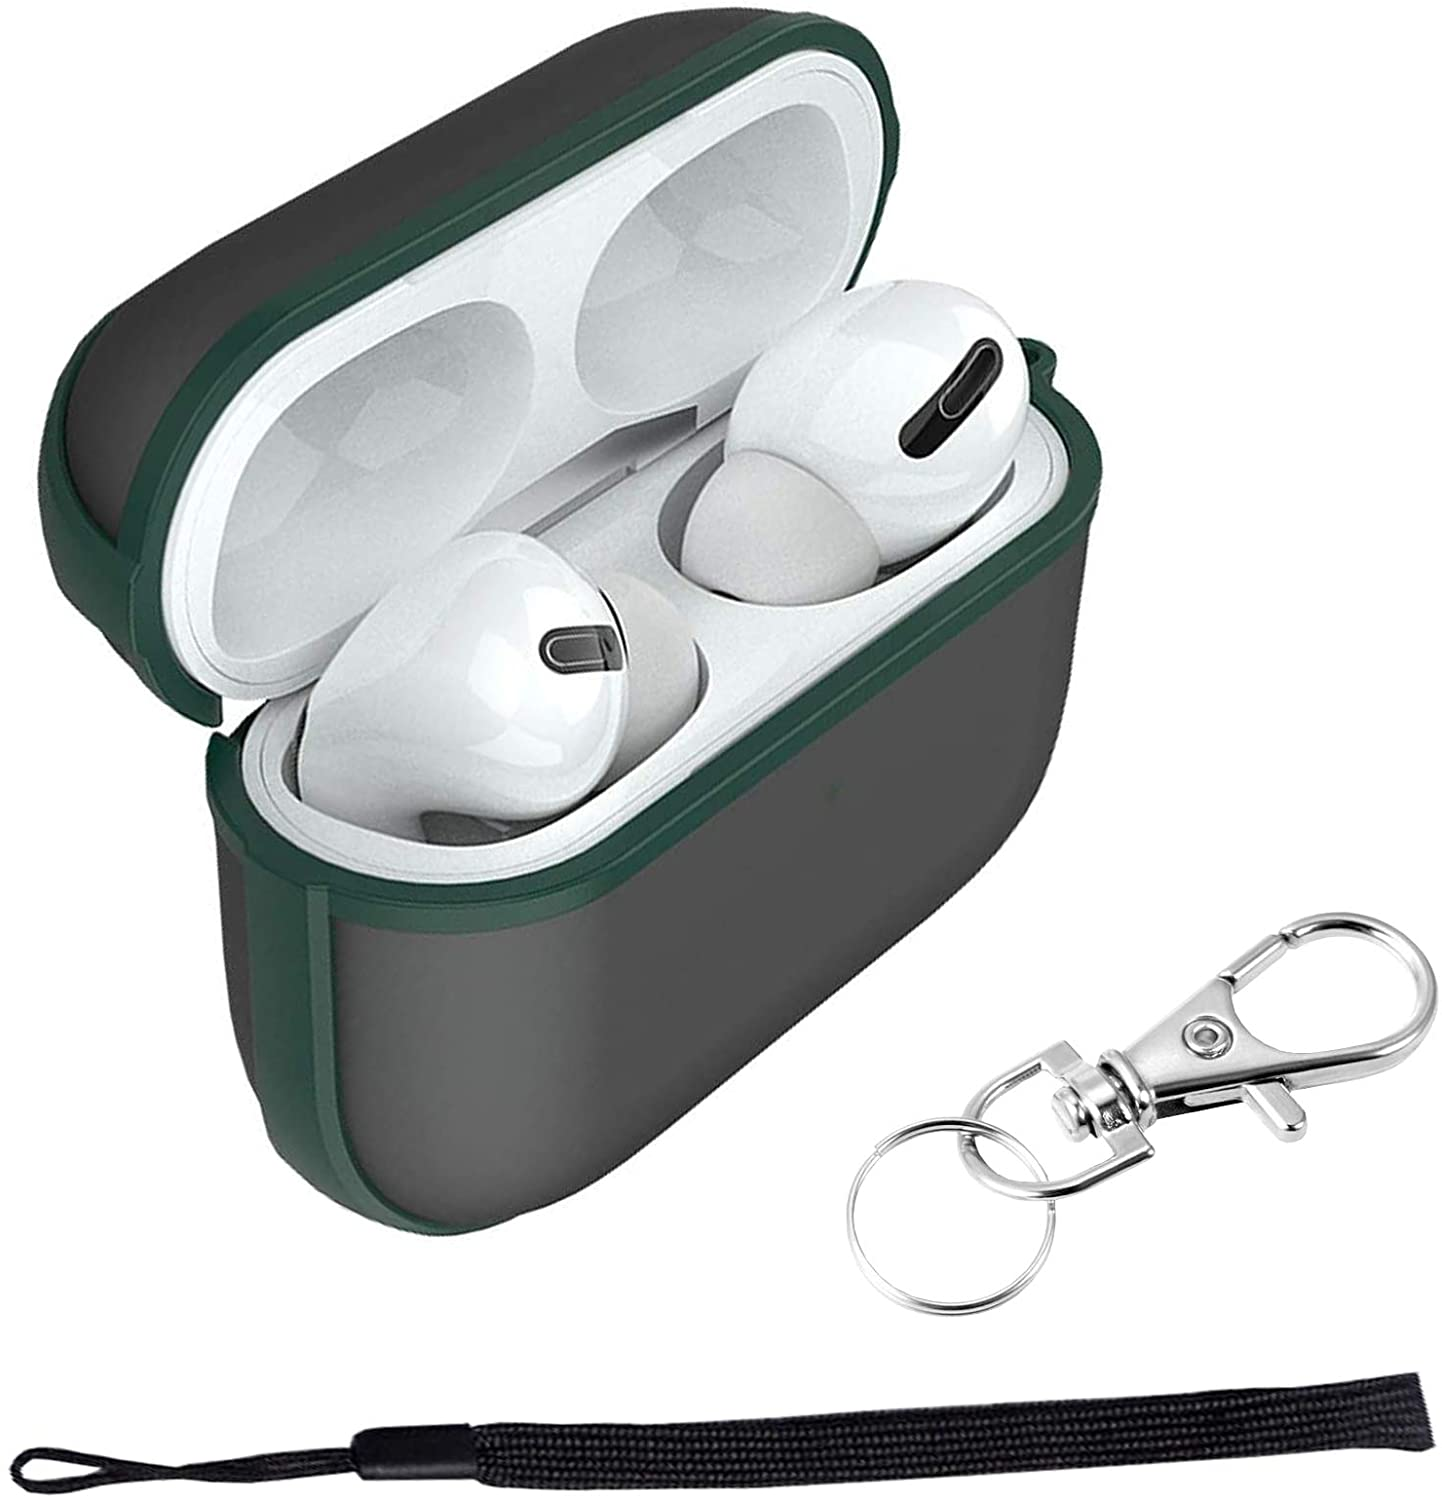 Clear Case Compatible for EarPods Pro, AirPods Pro Transparent Case, Apple Headphone AirPods Pro Case with Keychain Anti Lost Wrist Strap (Green Frame)